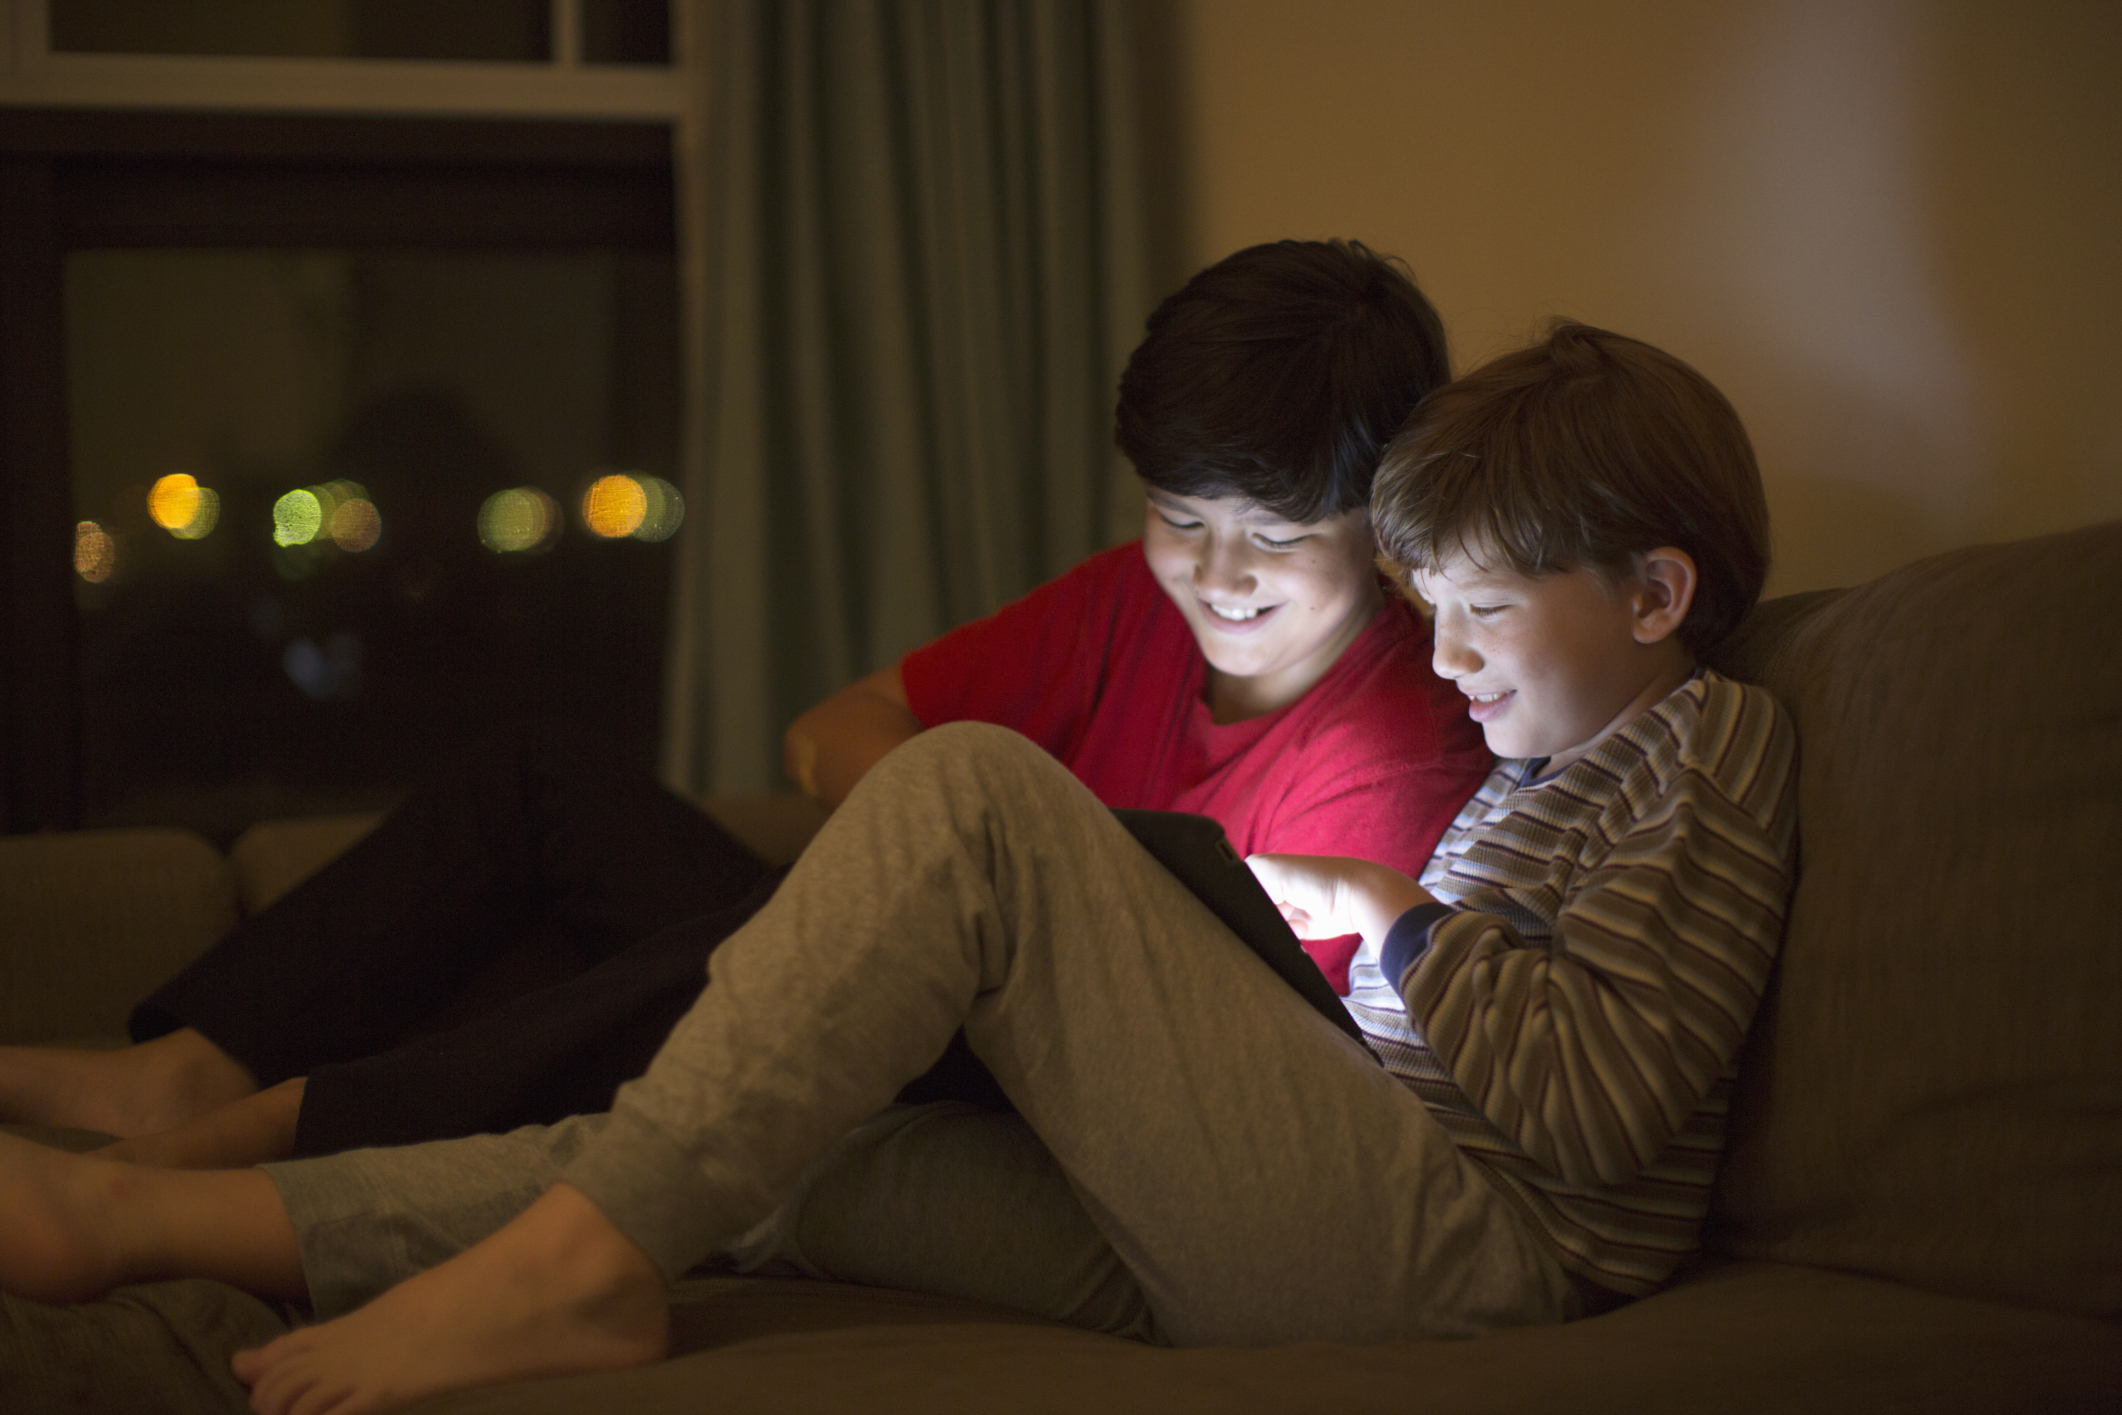 Monitoring Your Child's Online Activity - Where Should You Draw The Line?